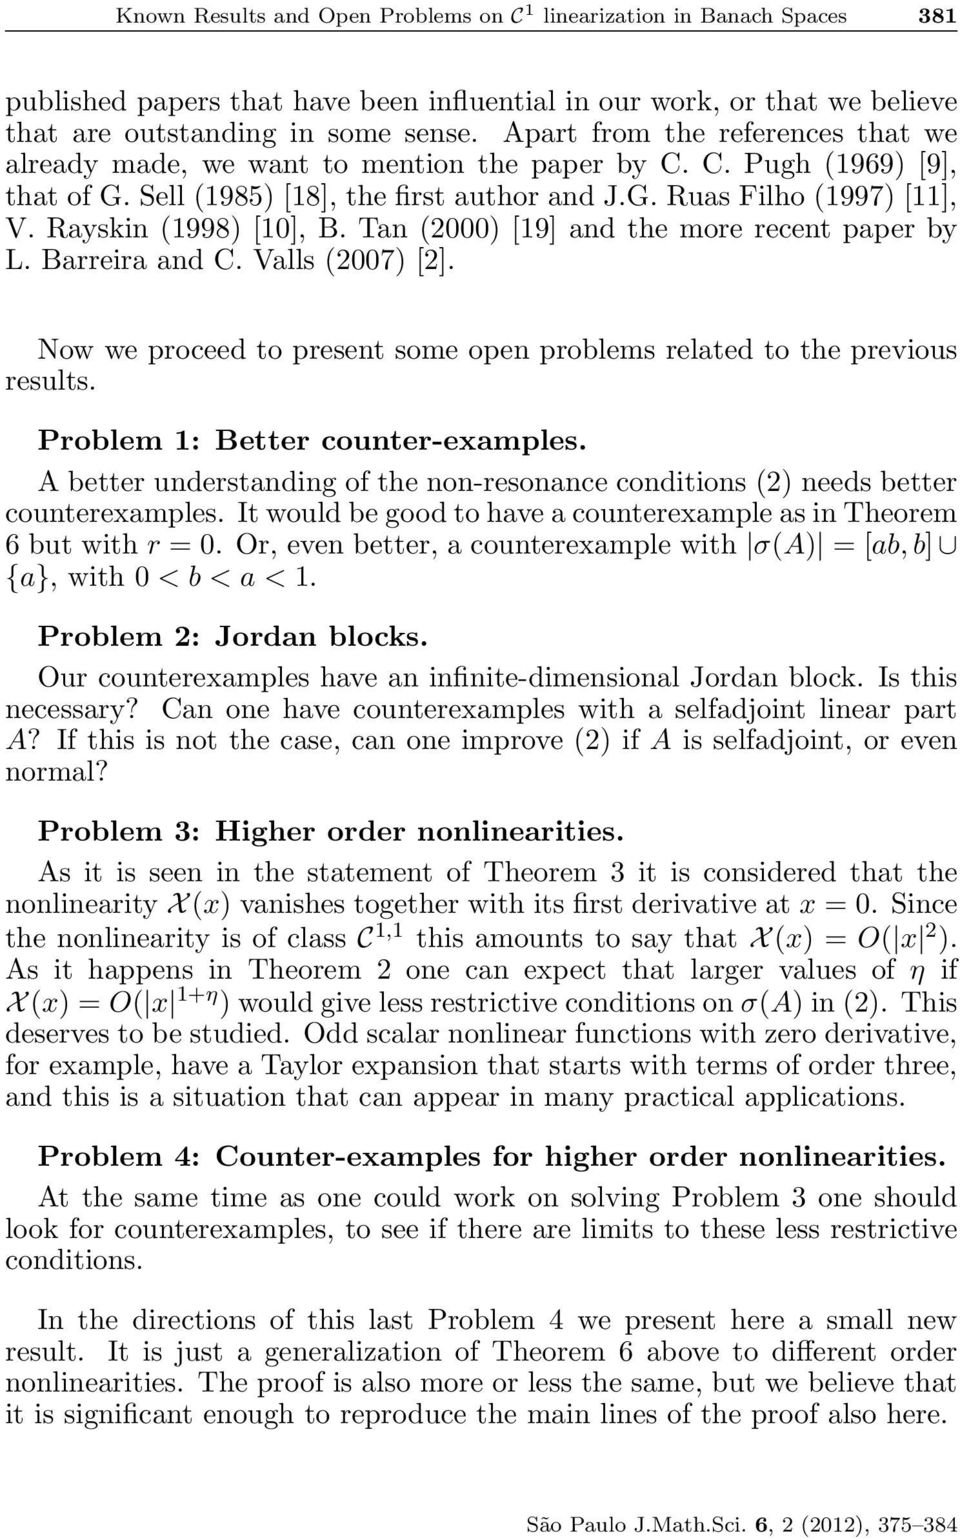 Rayskin (1998) [10], B. Tan (2000) [19] and the more recent paper by L. Barreira and C. Valls (2007) [2]. Now we proceed to present some open problems related to the previous results.